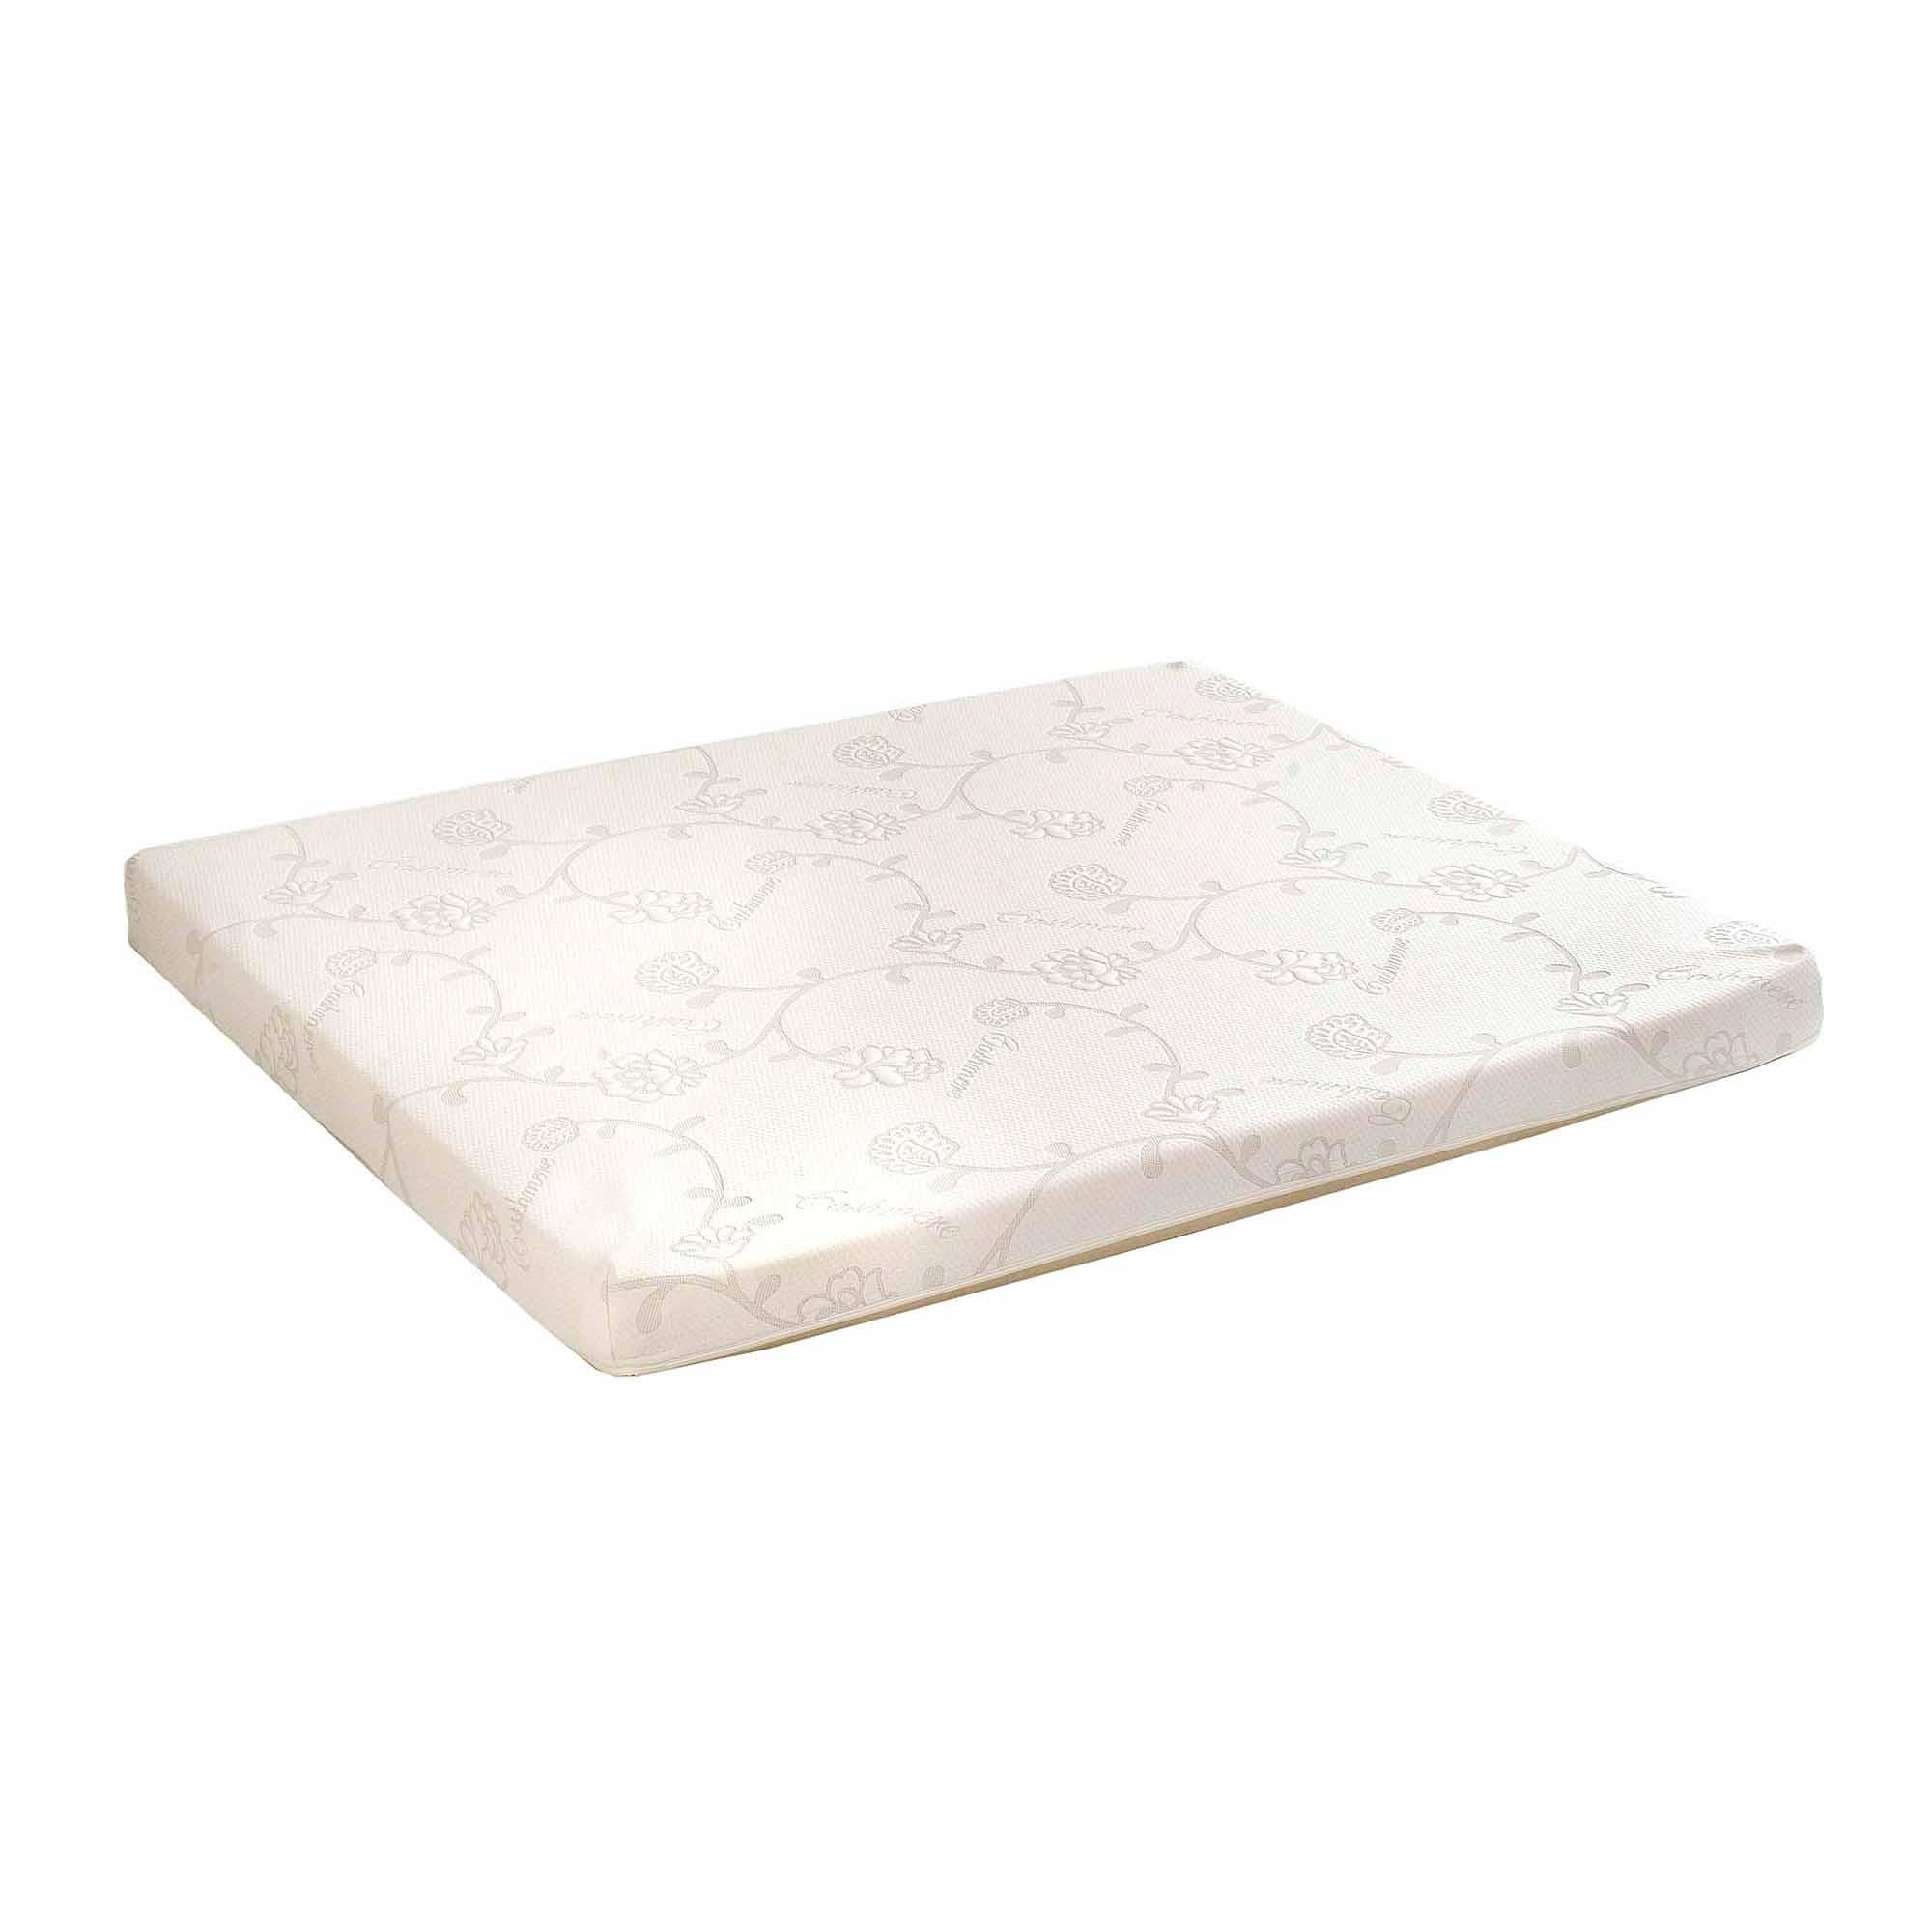 Replacement Memory Foam Sleeper Sofa Mattress With Removable Cover Throughout Sleeper Sofas Mattress Covers (View 15 of 20)